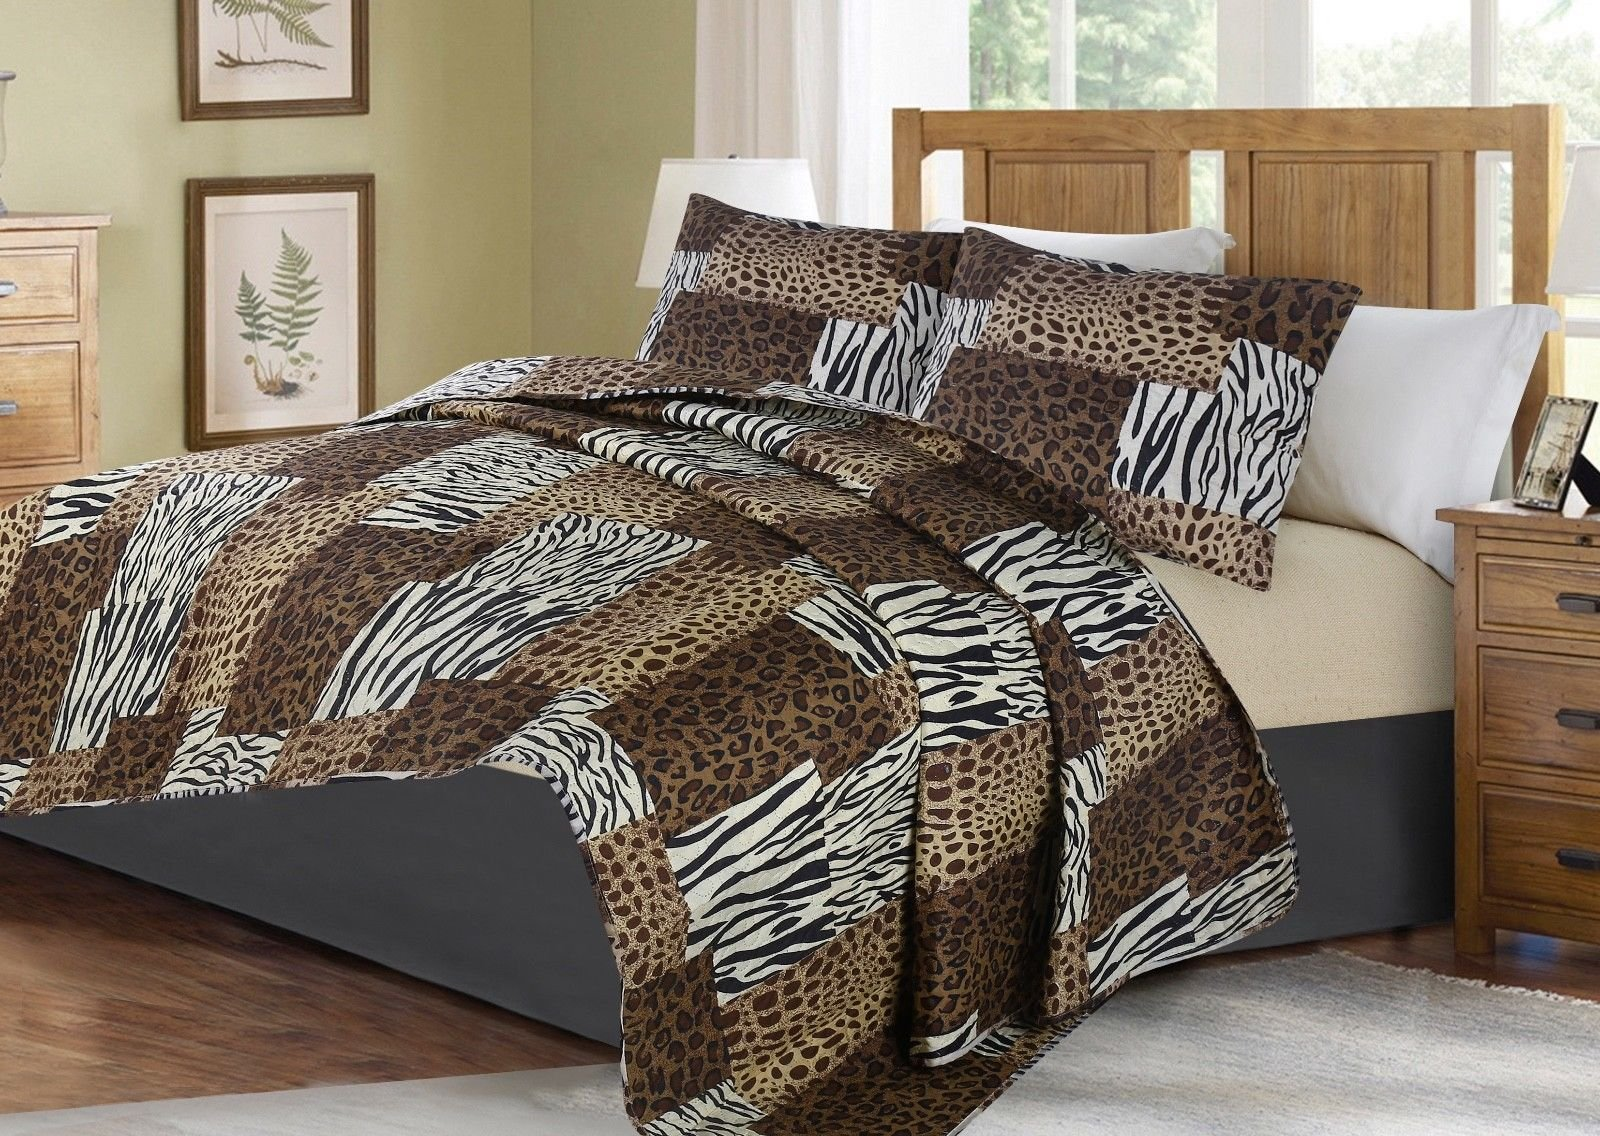 no!no! Printed Animal Designs Bedspread Coverlet Quilt Set with Pillow Shams Animal 5# Size Queen